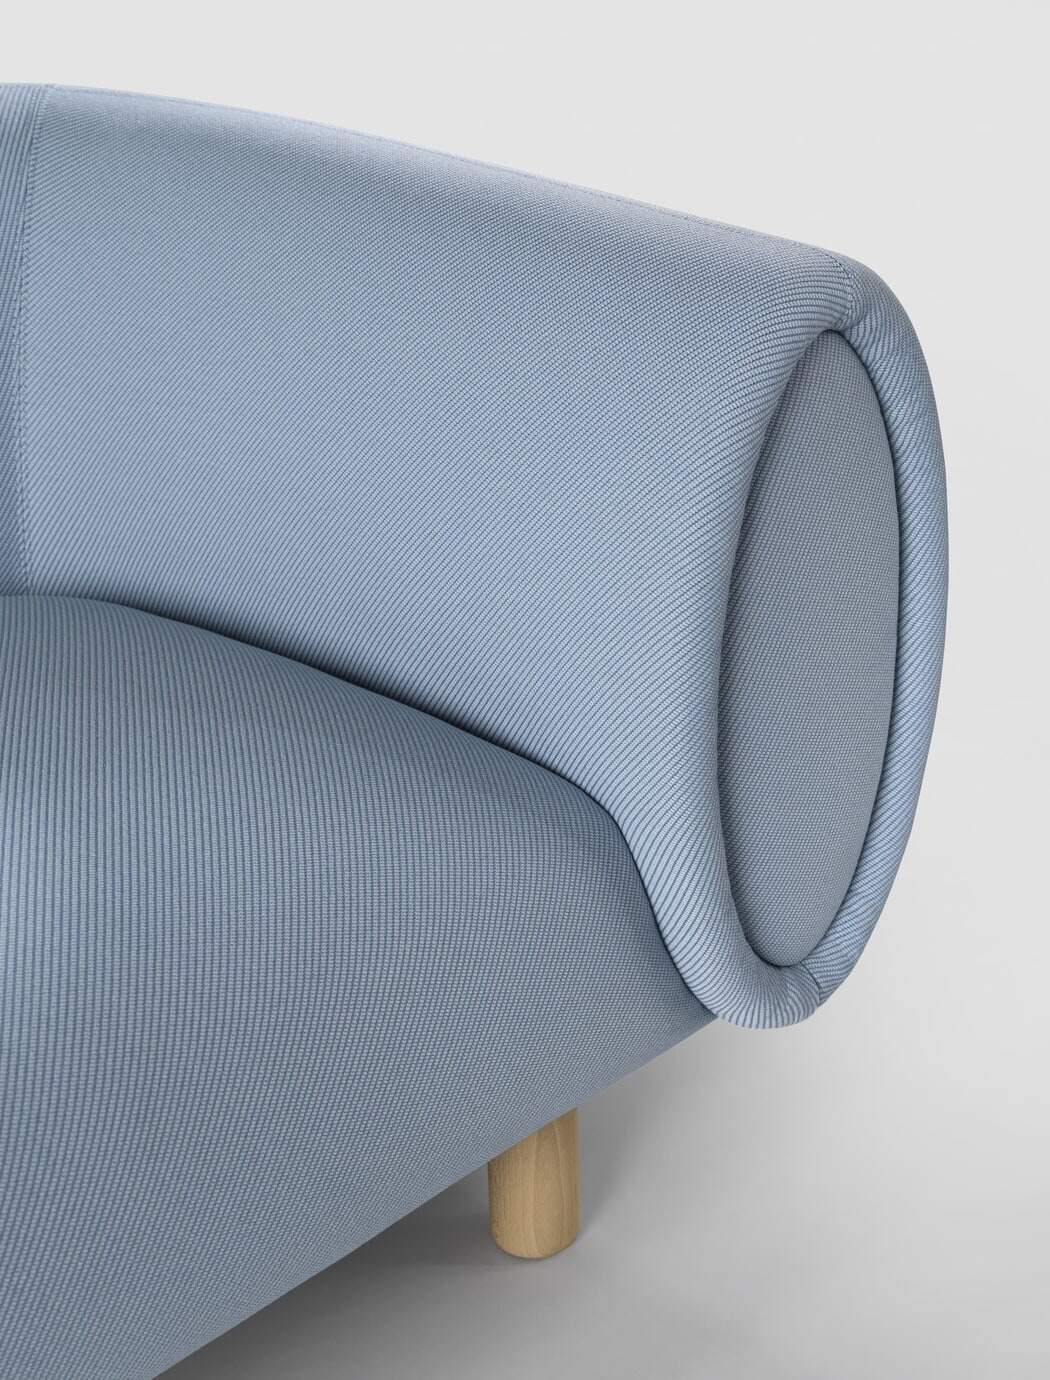 Tobi Sofa, a New Design Icon Created by Elena Trevisan for Rexite